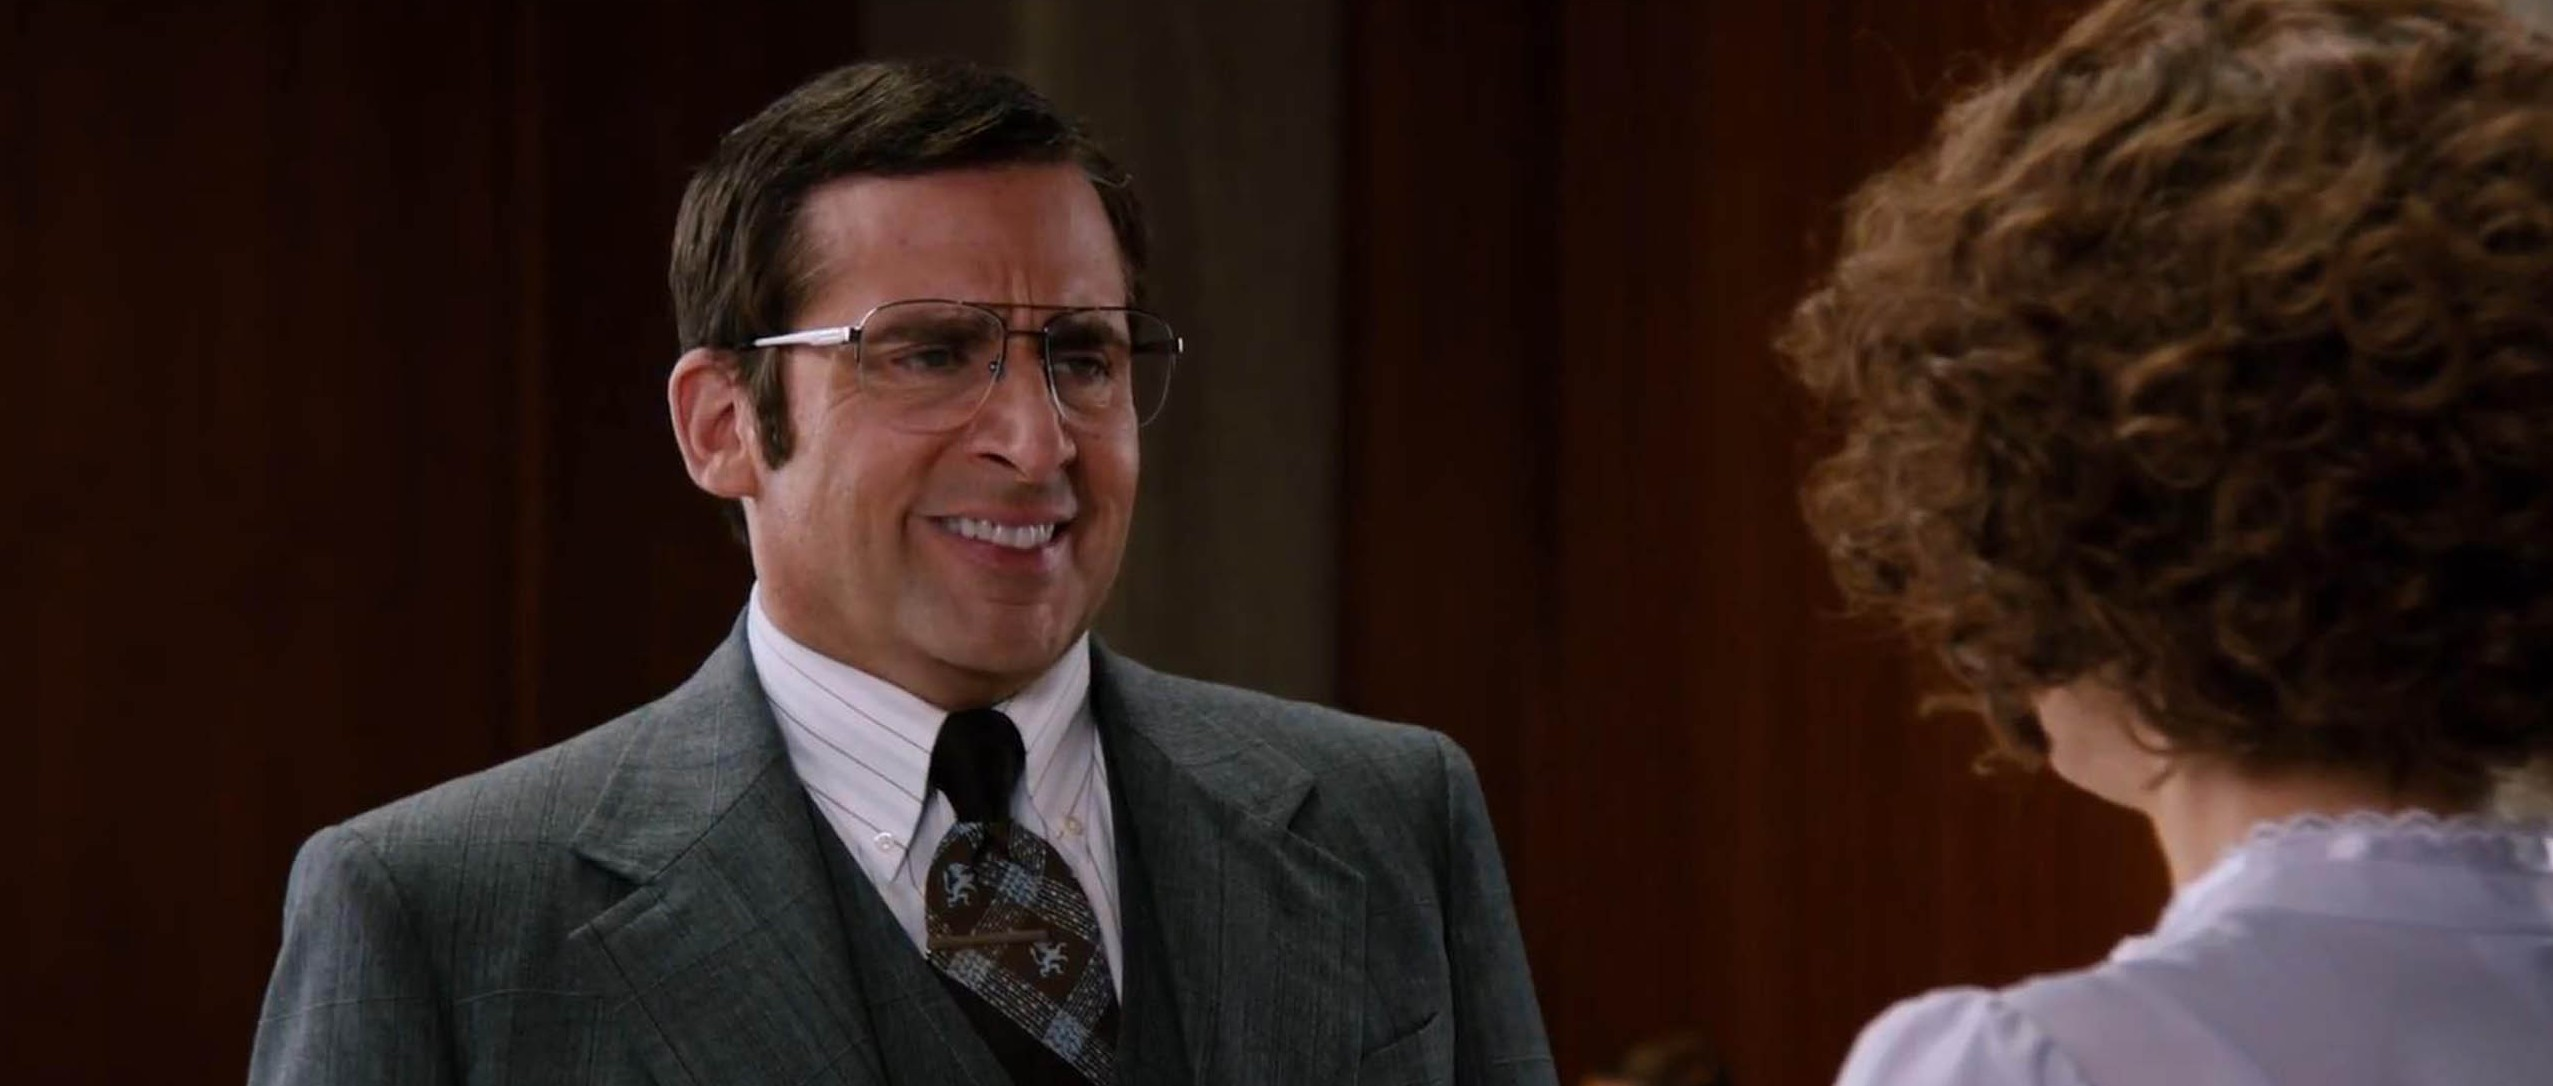 Steve Carell: Ricky Gervais could be in Anchorman 3